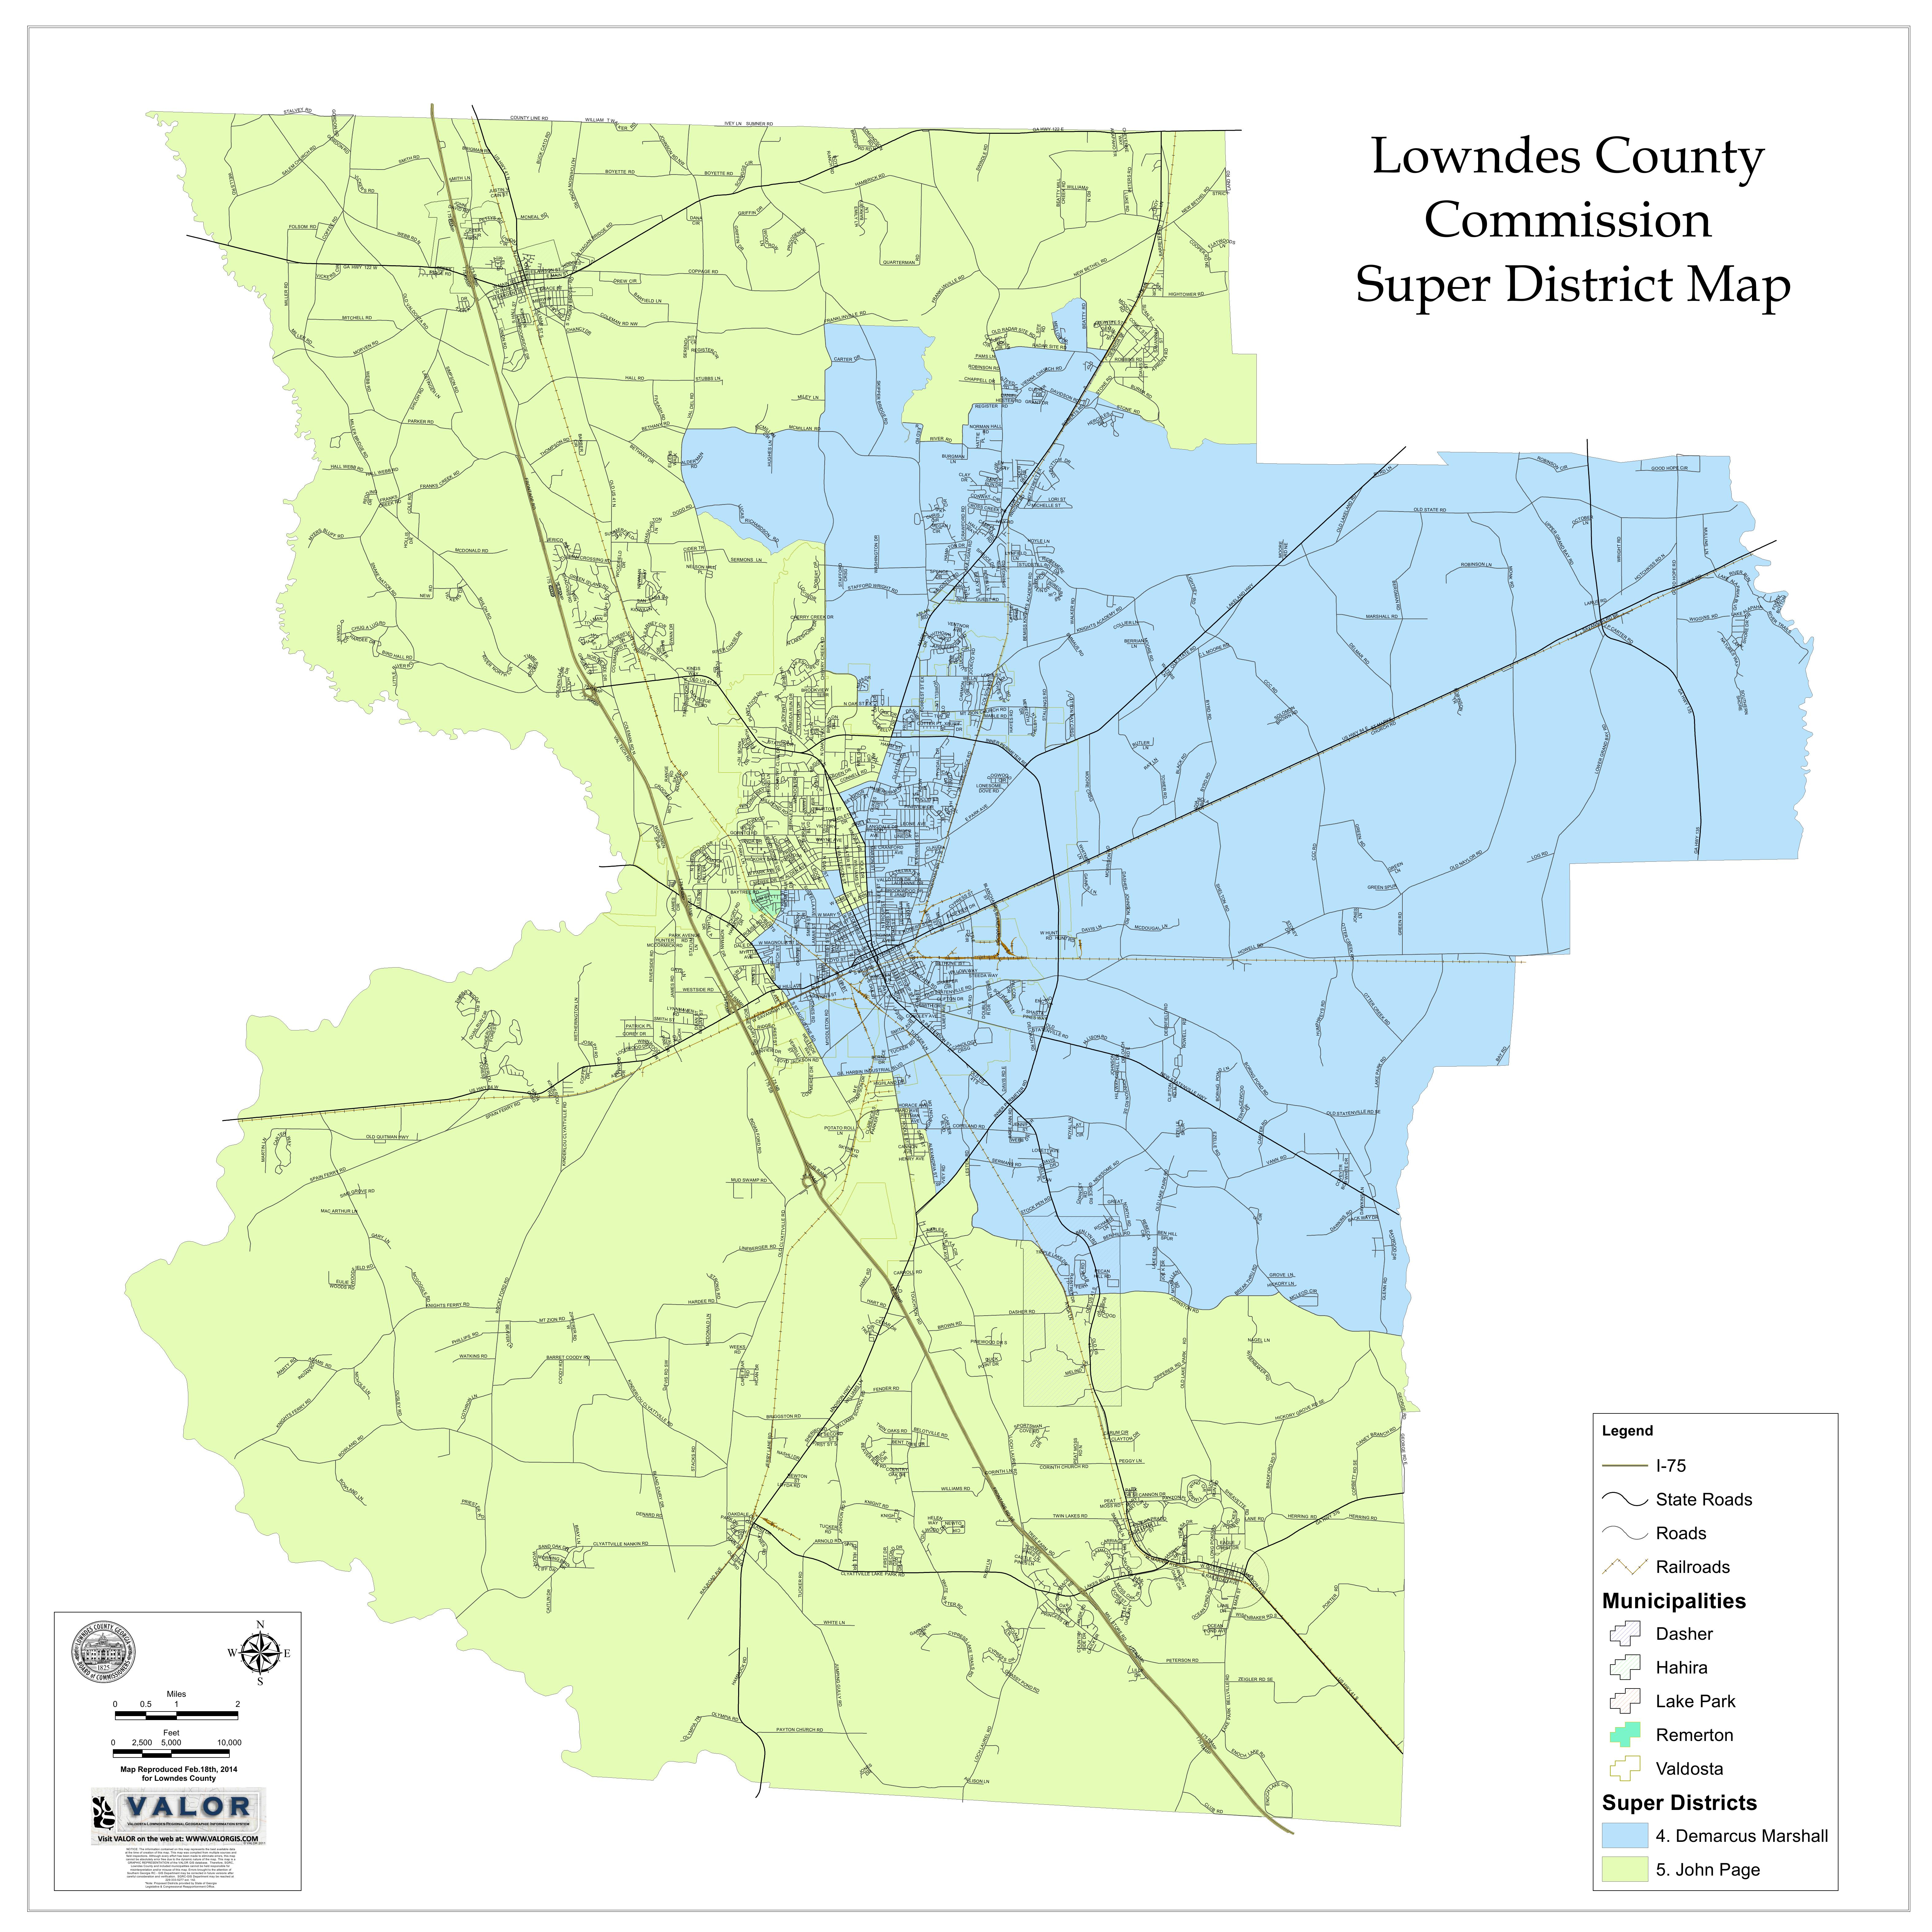 6300x6300 District 5 (west) and District 4 (east), in Lowndes County Superdistricts Map, by Lowndes County Commission, for gretchenforlowndes.com, 18 February 2014